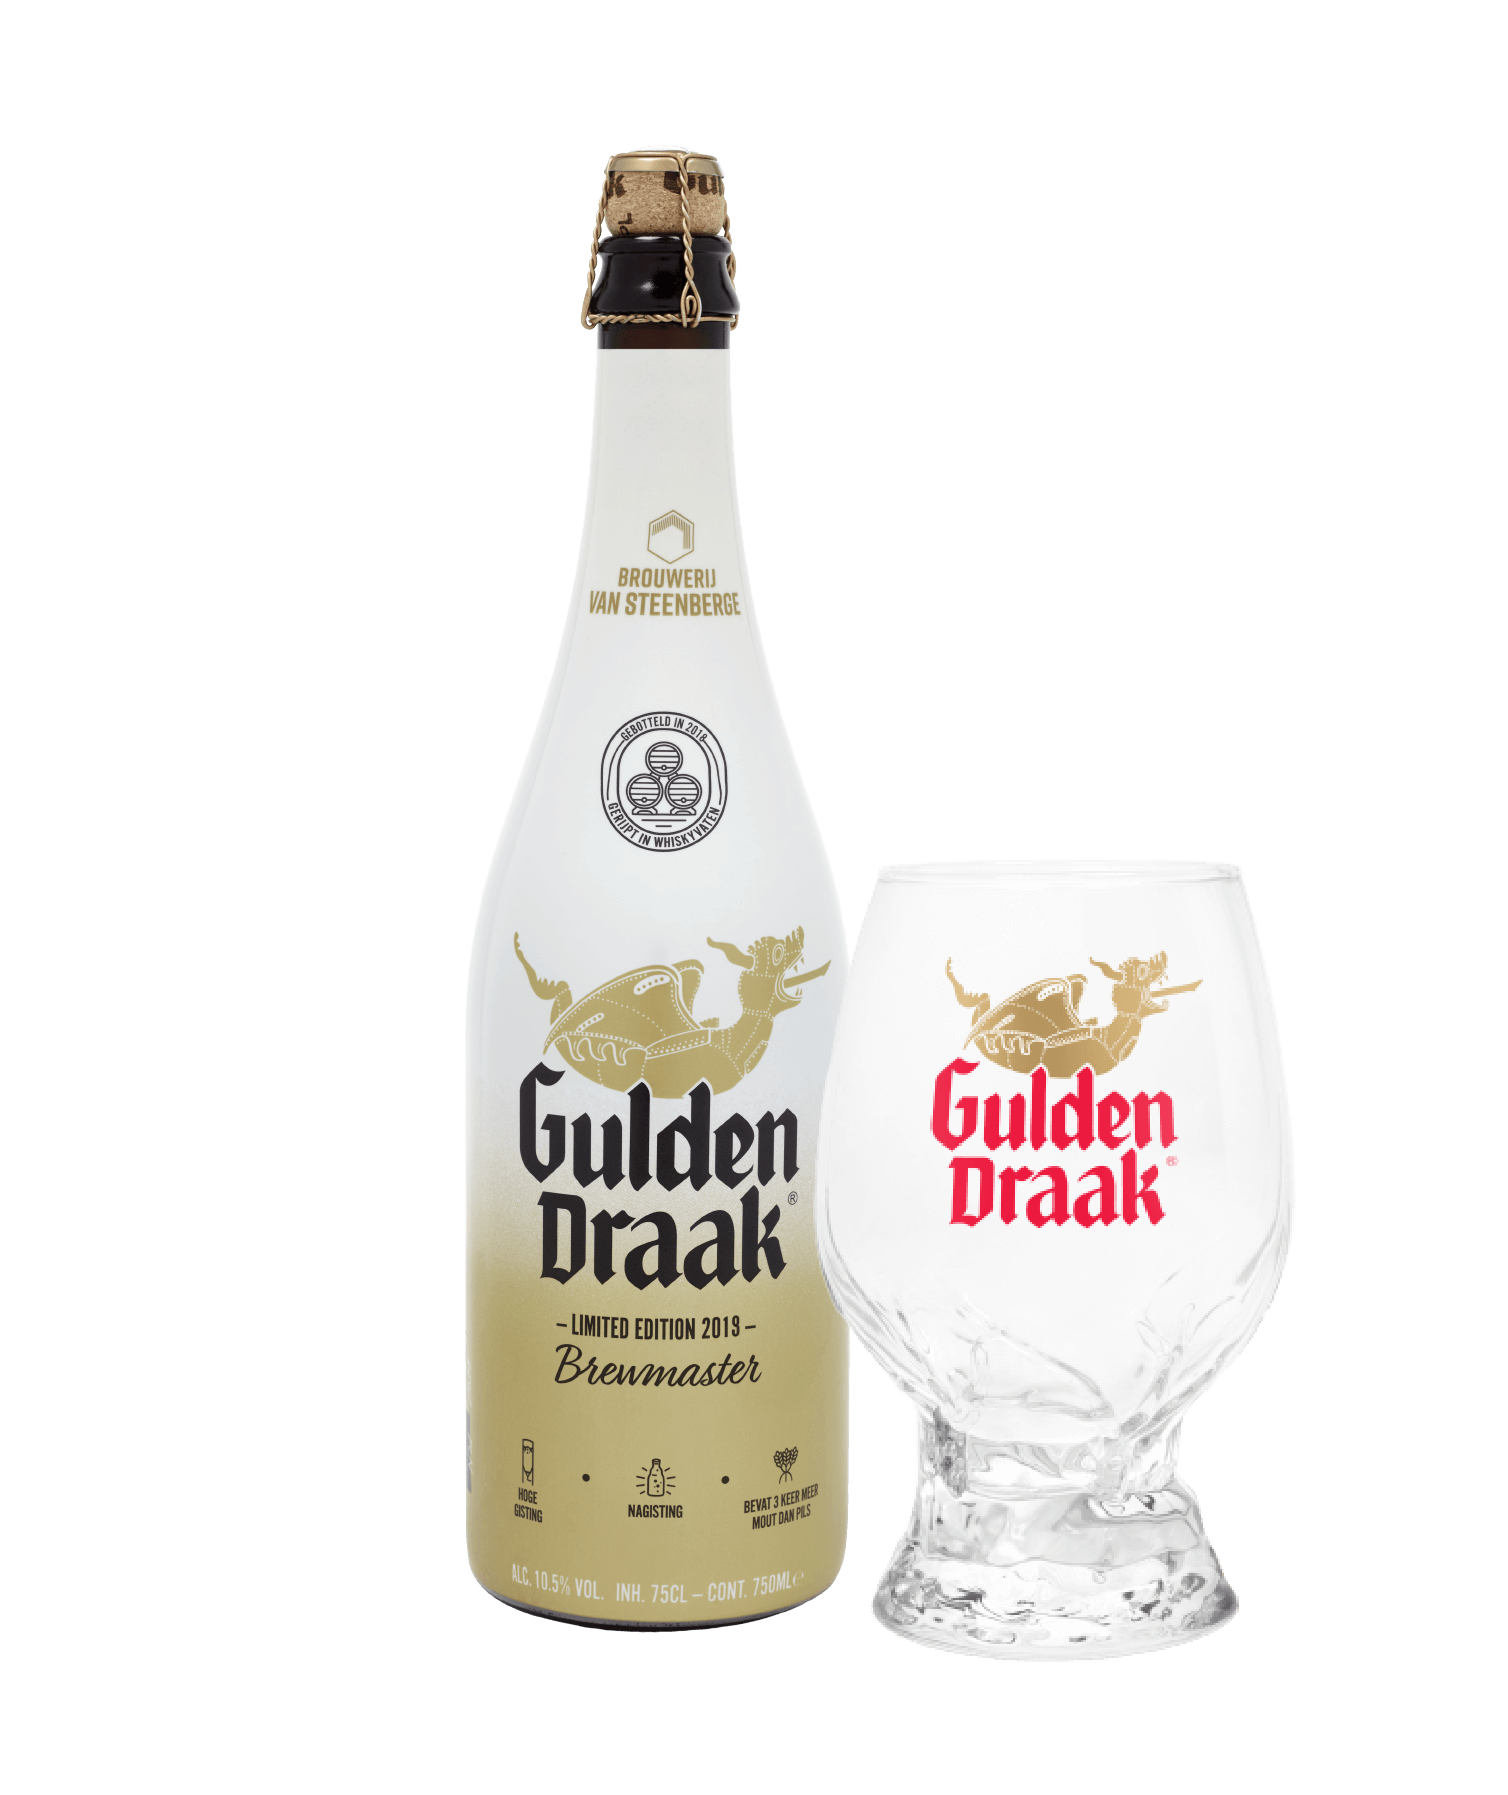 Gulden Draak Brewmaster's Edition